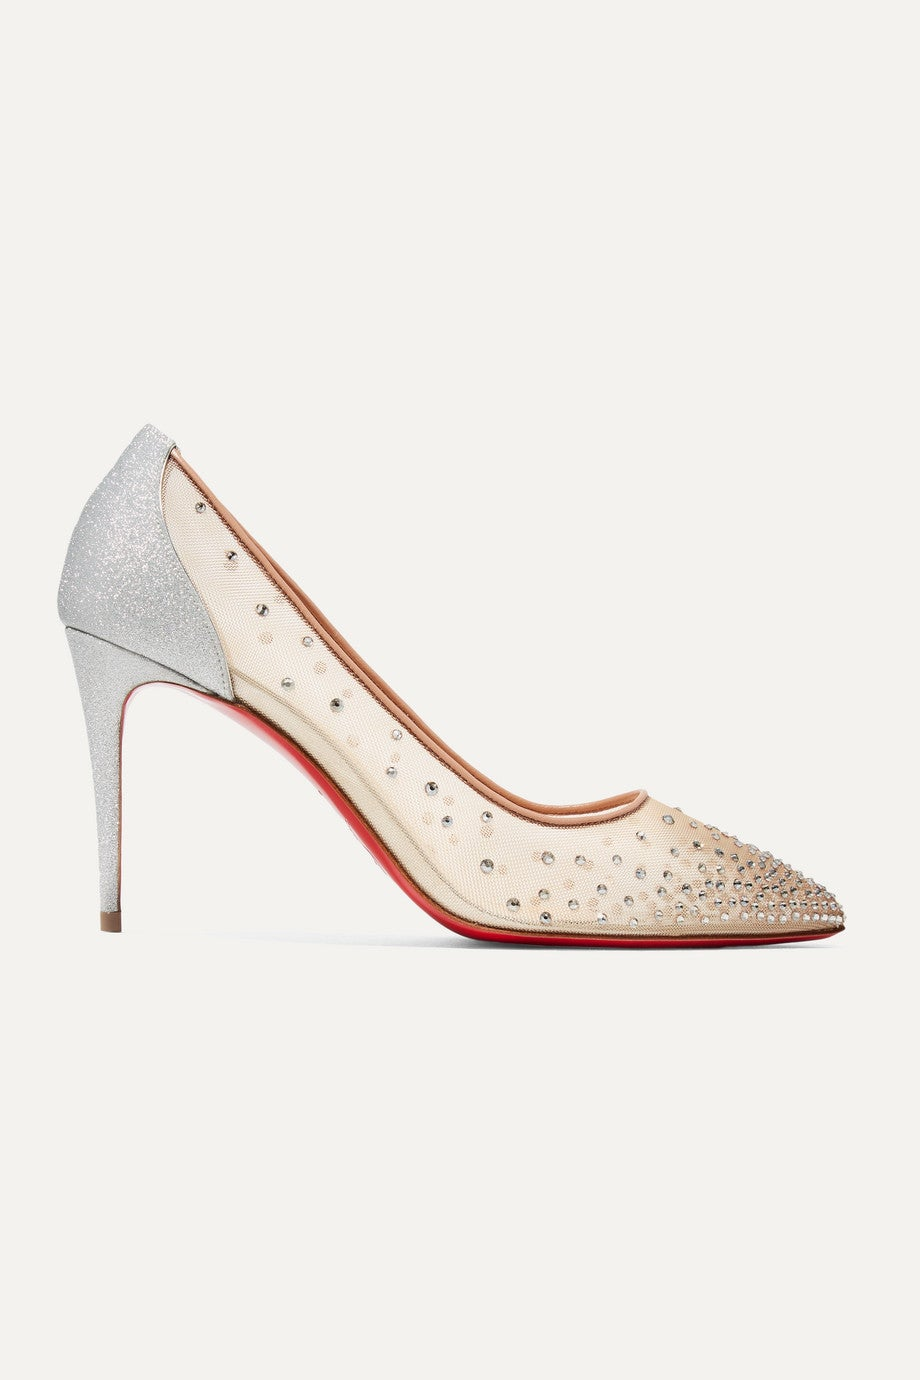 Eva Chantilly Lace With Blue Sole Wedding Bridal Shoes By Bella